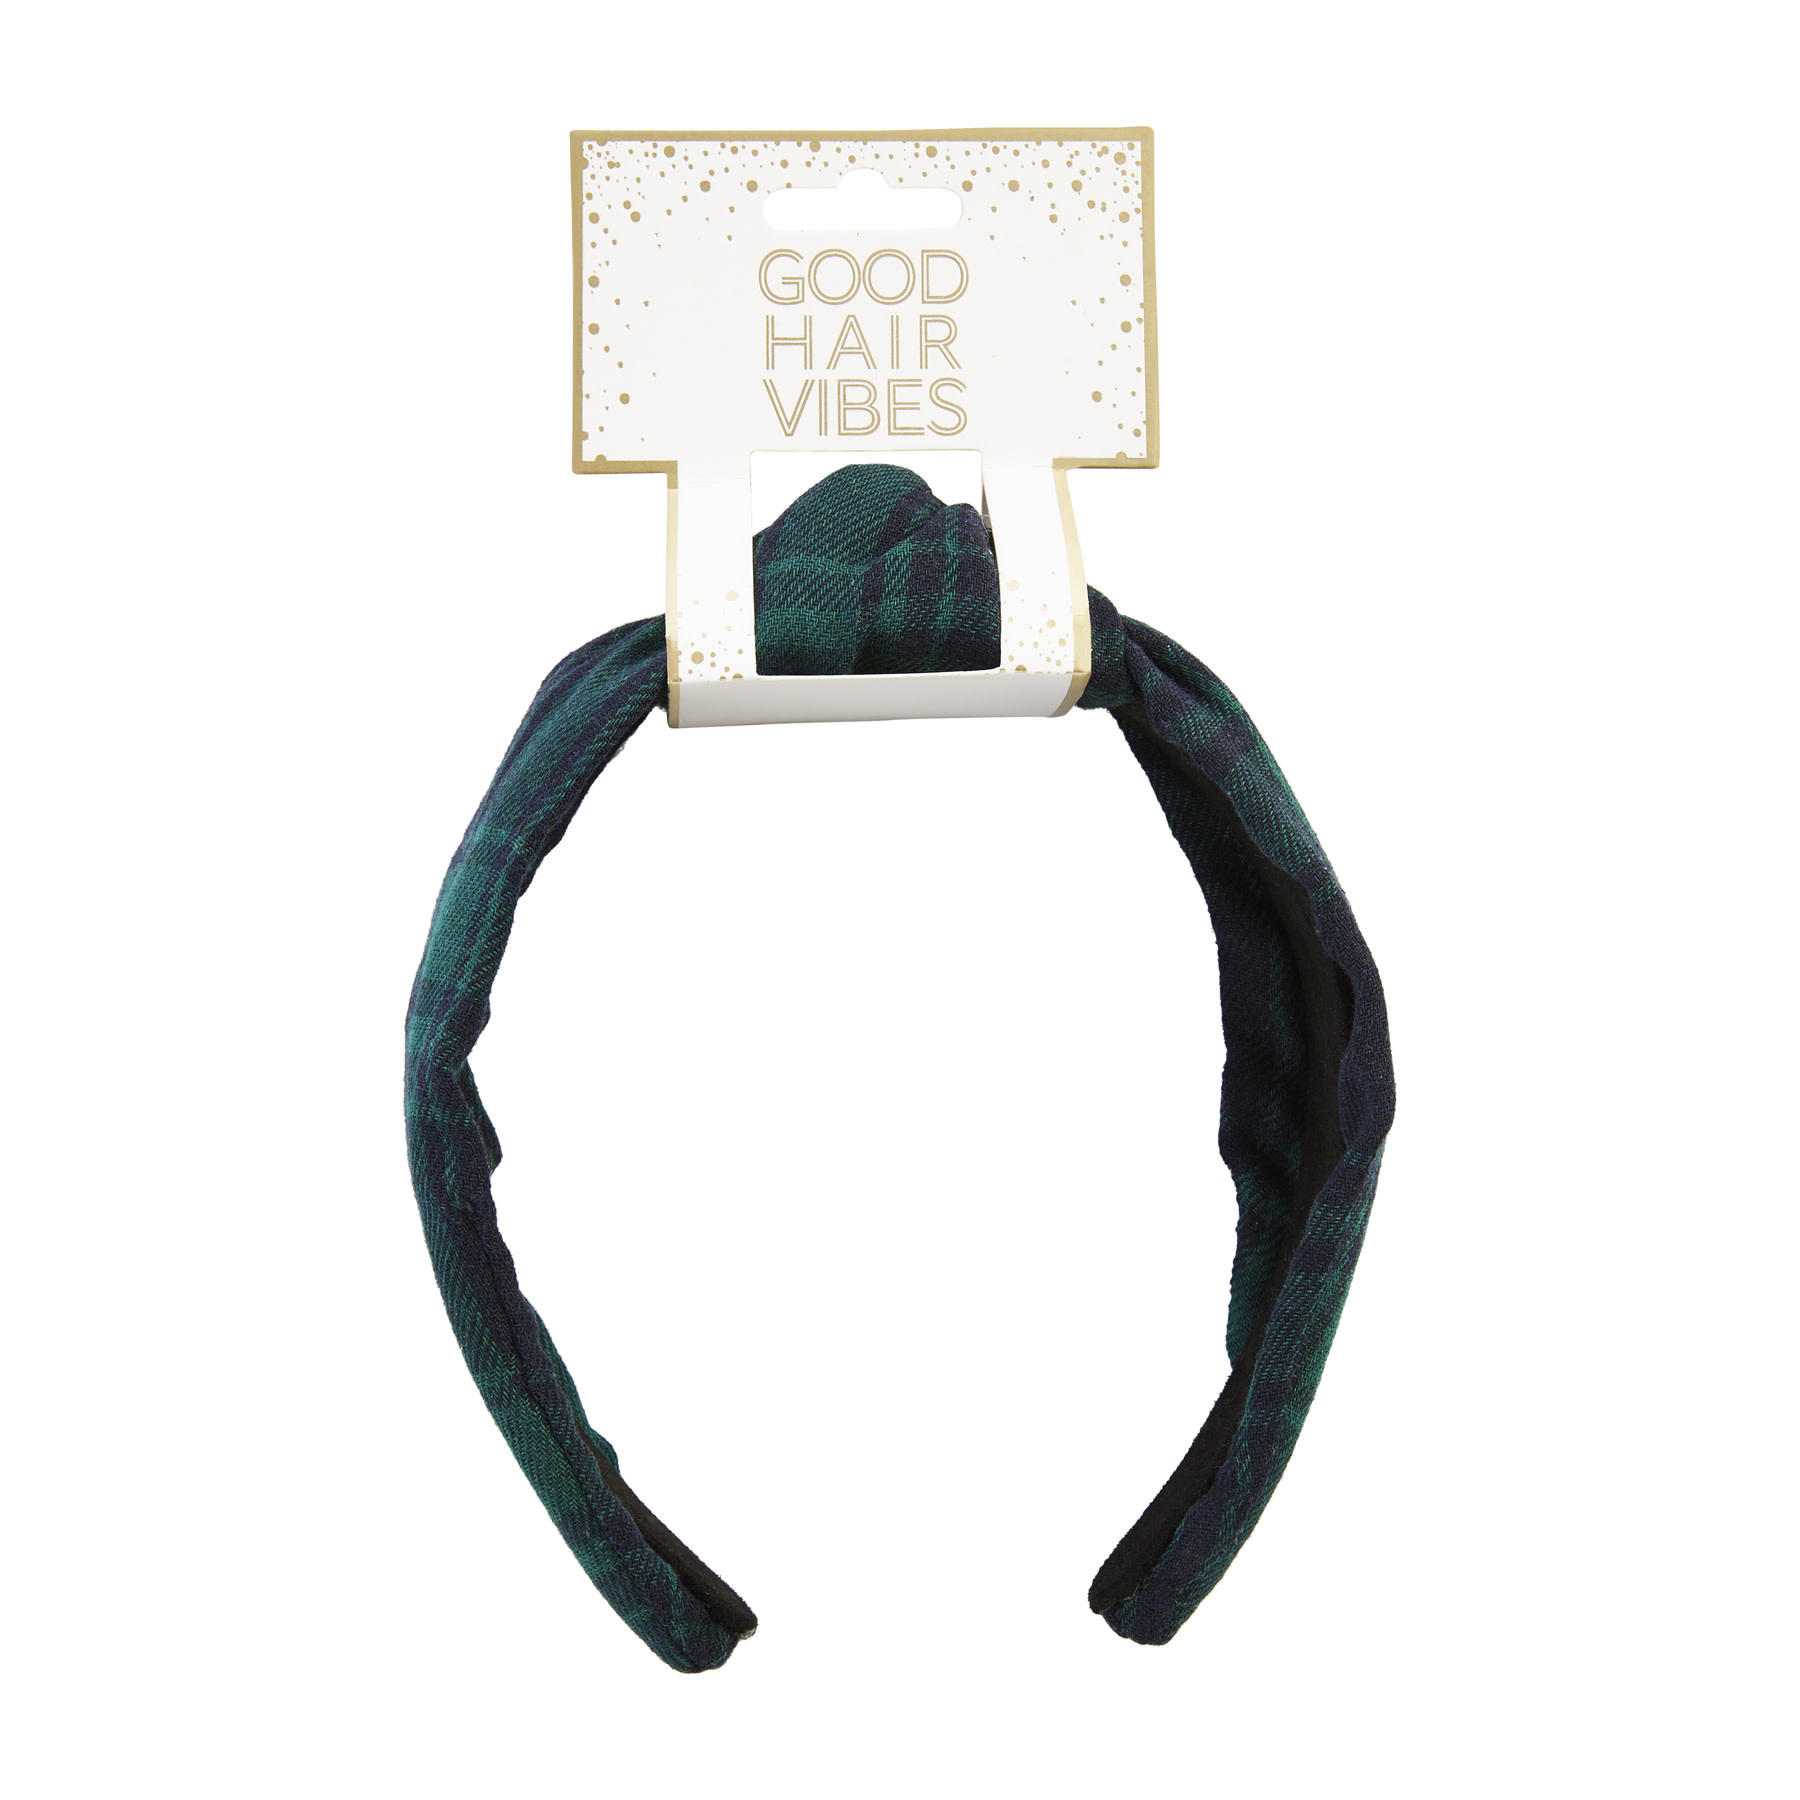 Mud Pie GREEN PATTERNED KNOTTED HEADBAND